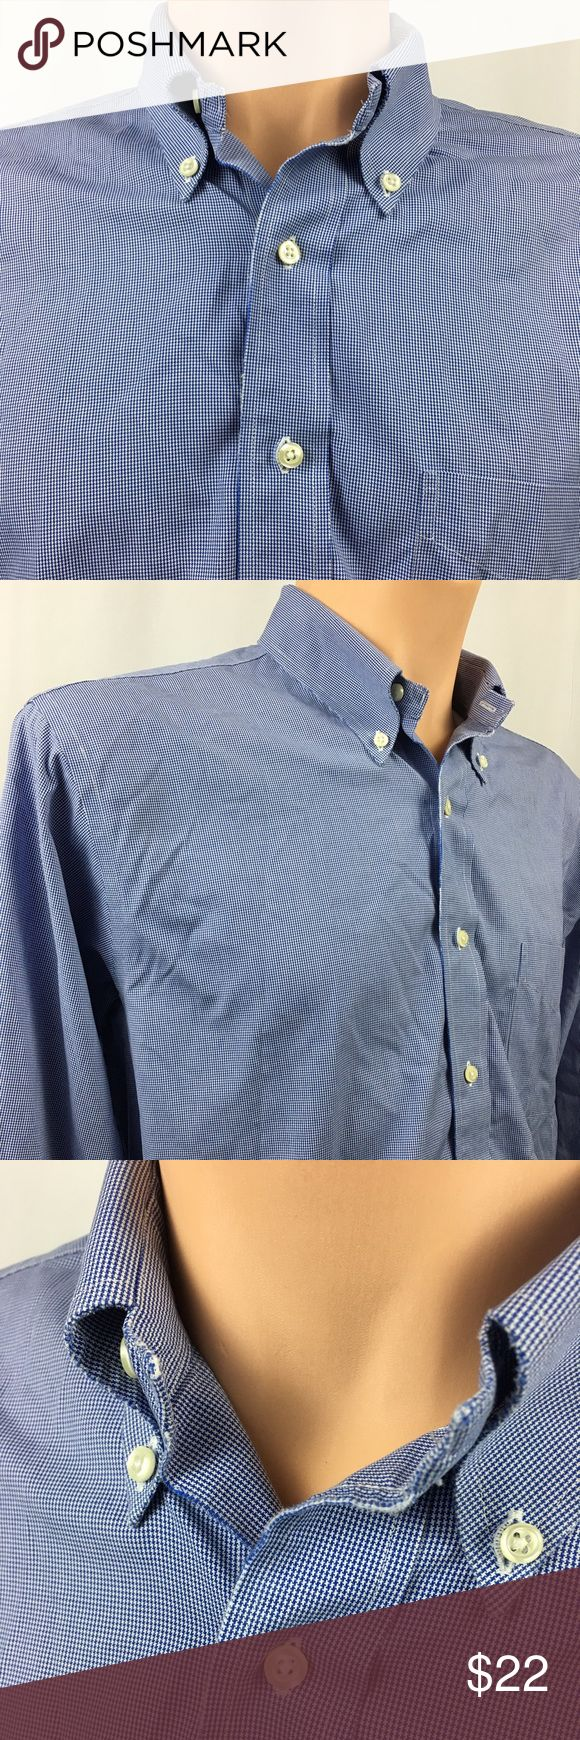 """Brooks Brothers Slim Fit Non Iron Dress Shirt blue Brooks Brothers Slim Fit Non Iron Dress Shirt 16.5 34 Blue Gingham LS All Cotton  Please see pictures as they are part of the description.  Euc - Some slight wear on some edges, at the neck and cuff, see pictures, very minor and hard to see  Measurements (approximately):   24"""" armpit to armpit 33"""" from top collar to bottom (hem) - top to bottom 24"""" Top Shoulder Seam to bottom of cuff - Arm 24"""" Waist 18"""" Armpit to Hem 19"""" Shoulders  I almost…"""